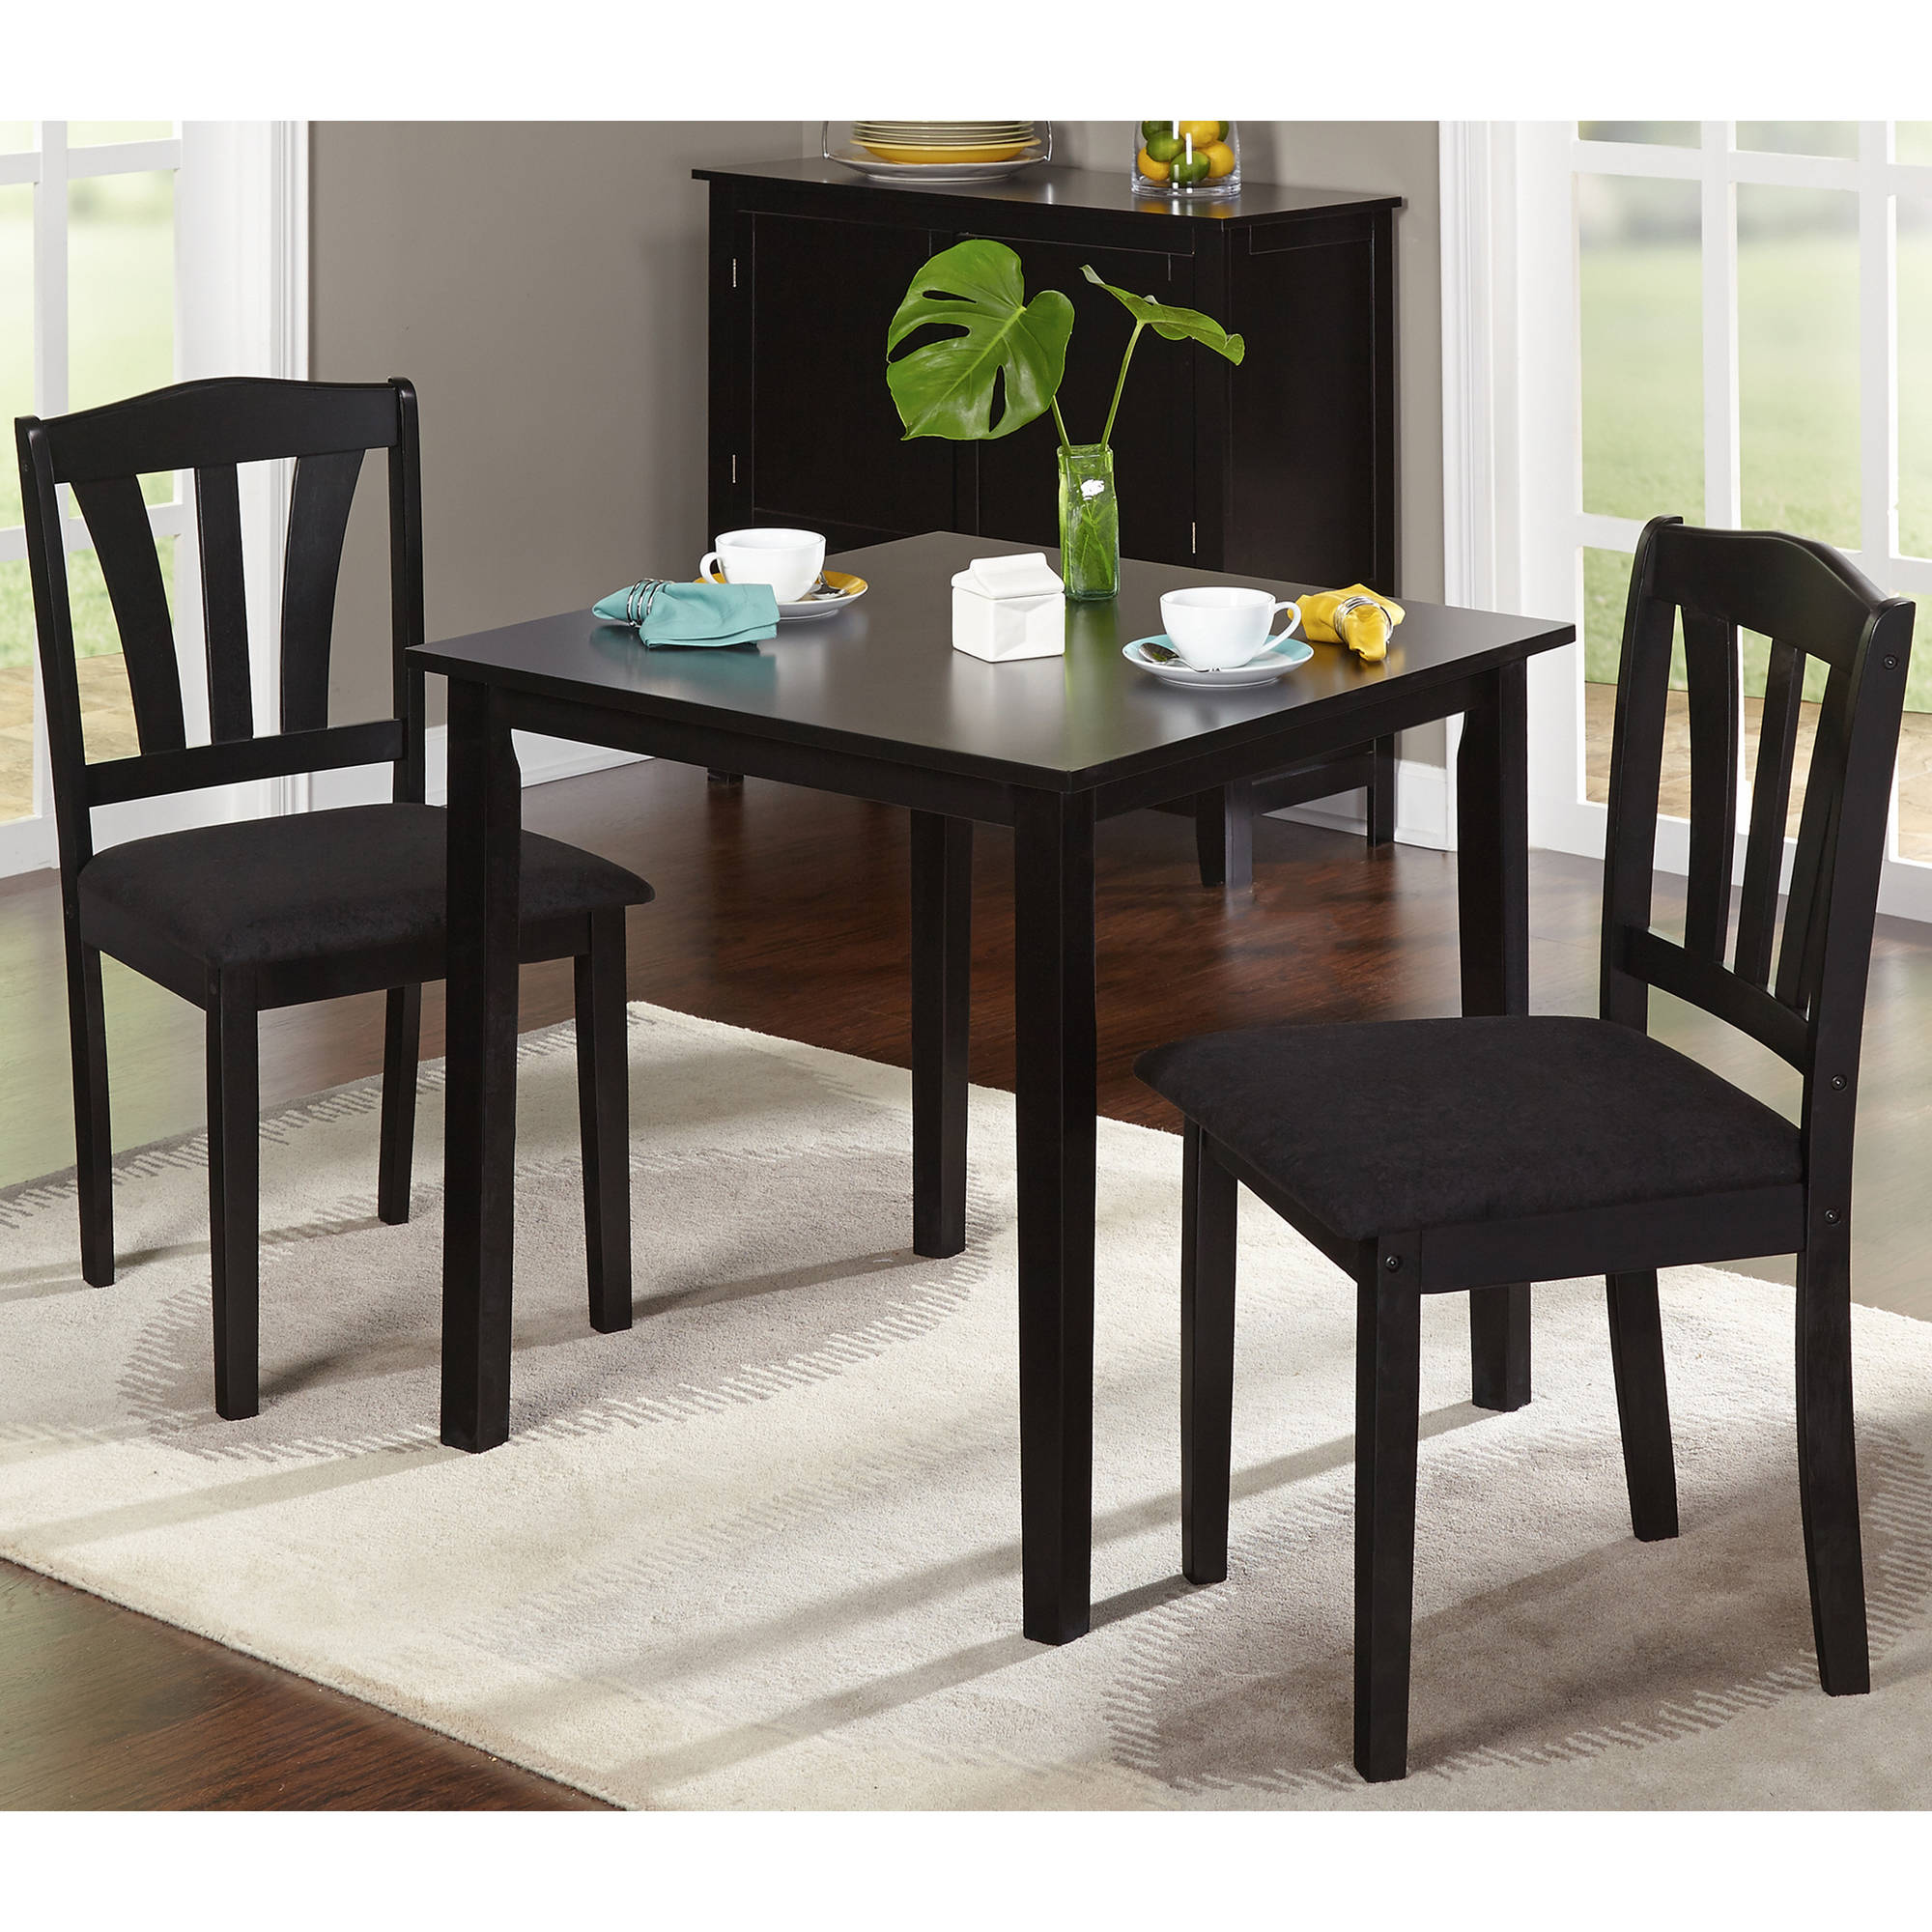 Mainstays Dining Table Rich Espresso Finish Seats 6 fortably